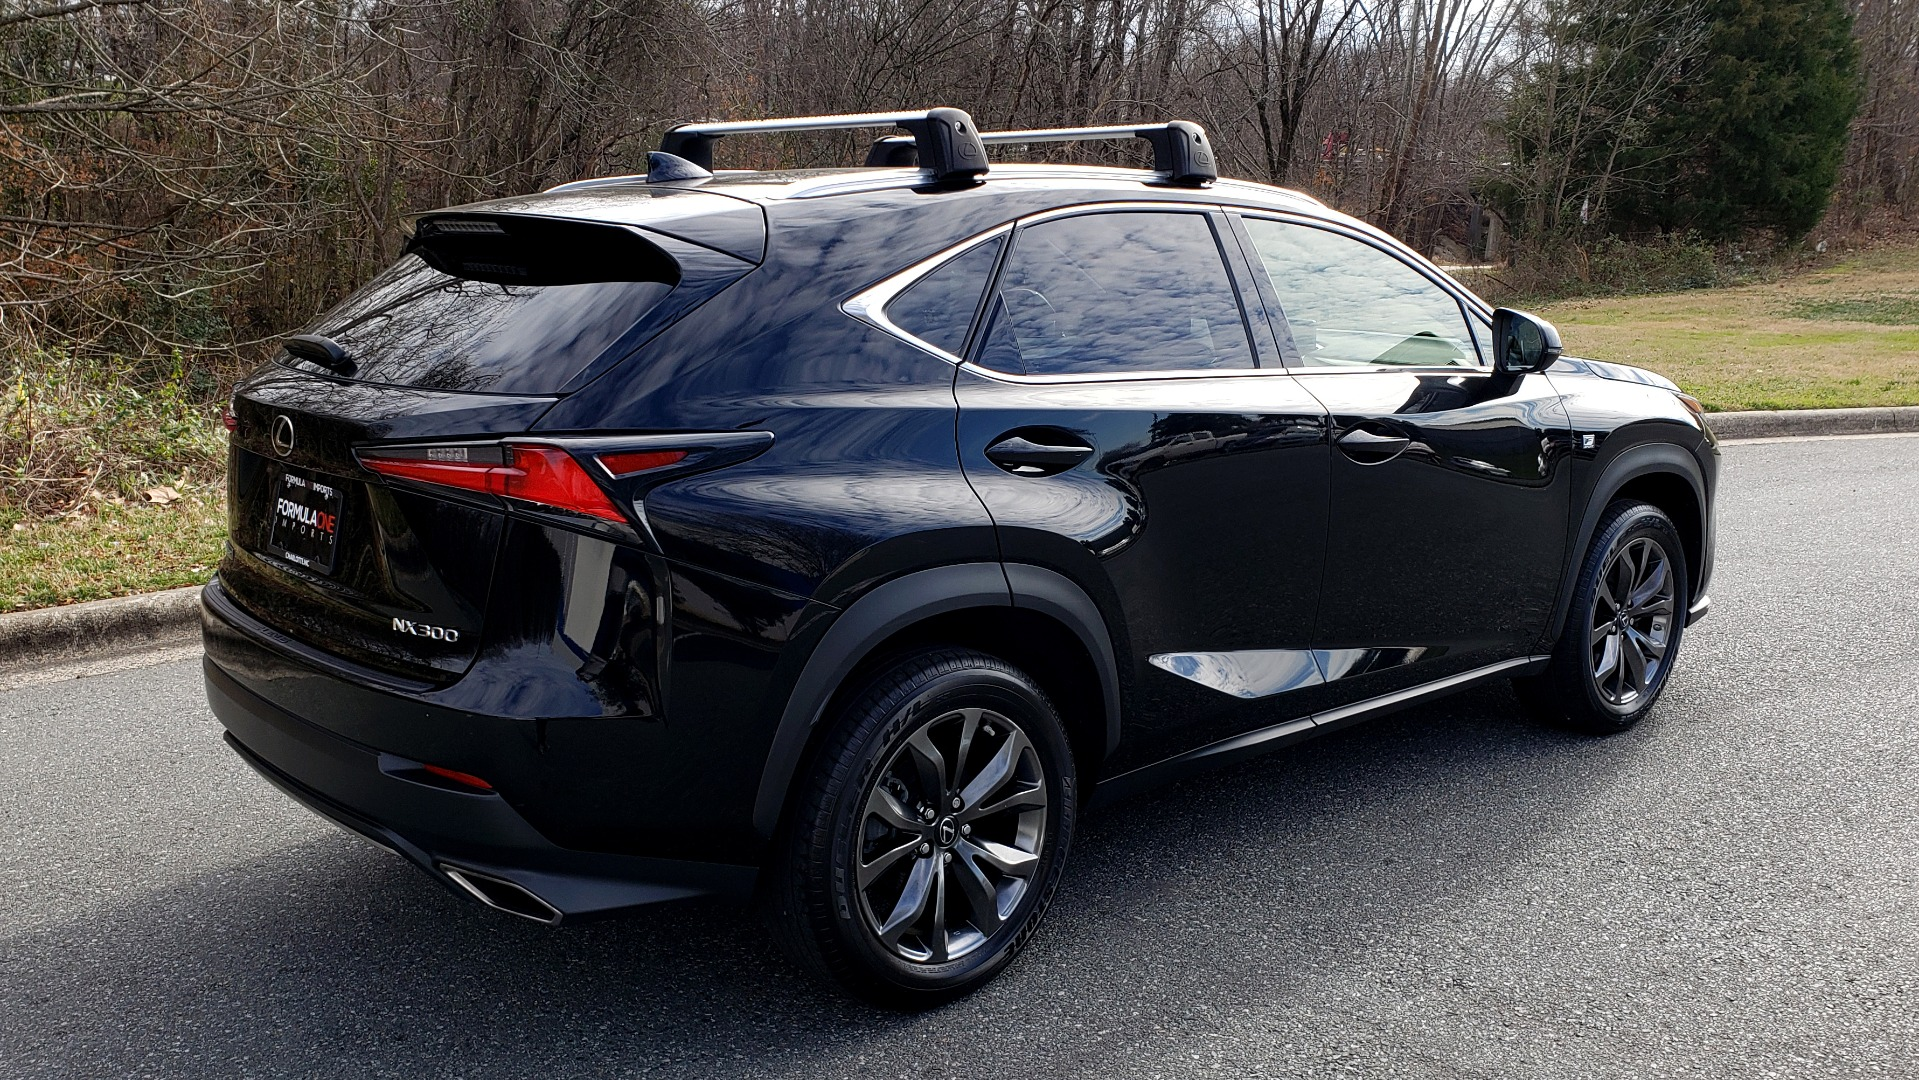 Used 2018 Lexus NX 300 F-SPORT / LEATHER / ACCY PKG / 18IN WHEELS for sale Sold at Formula Imports in Charlotte NC 28227 6